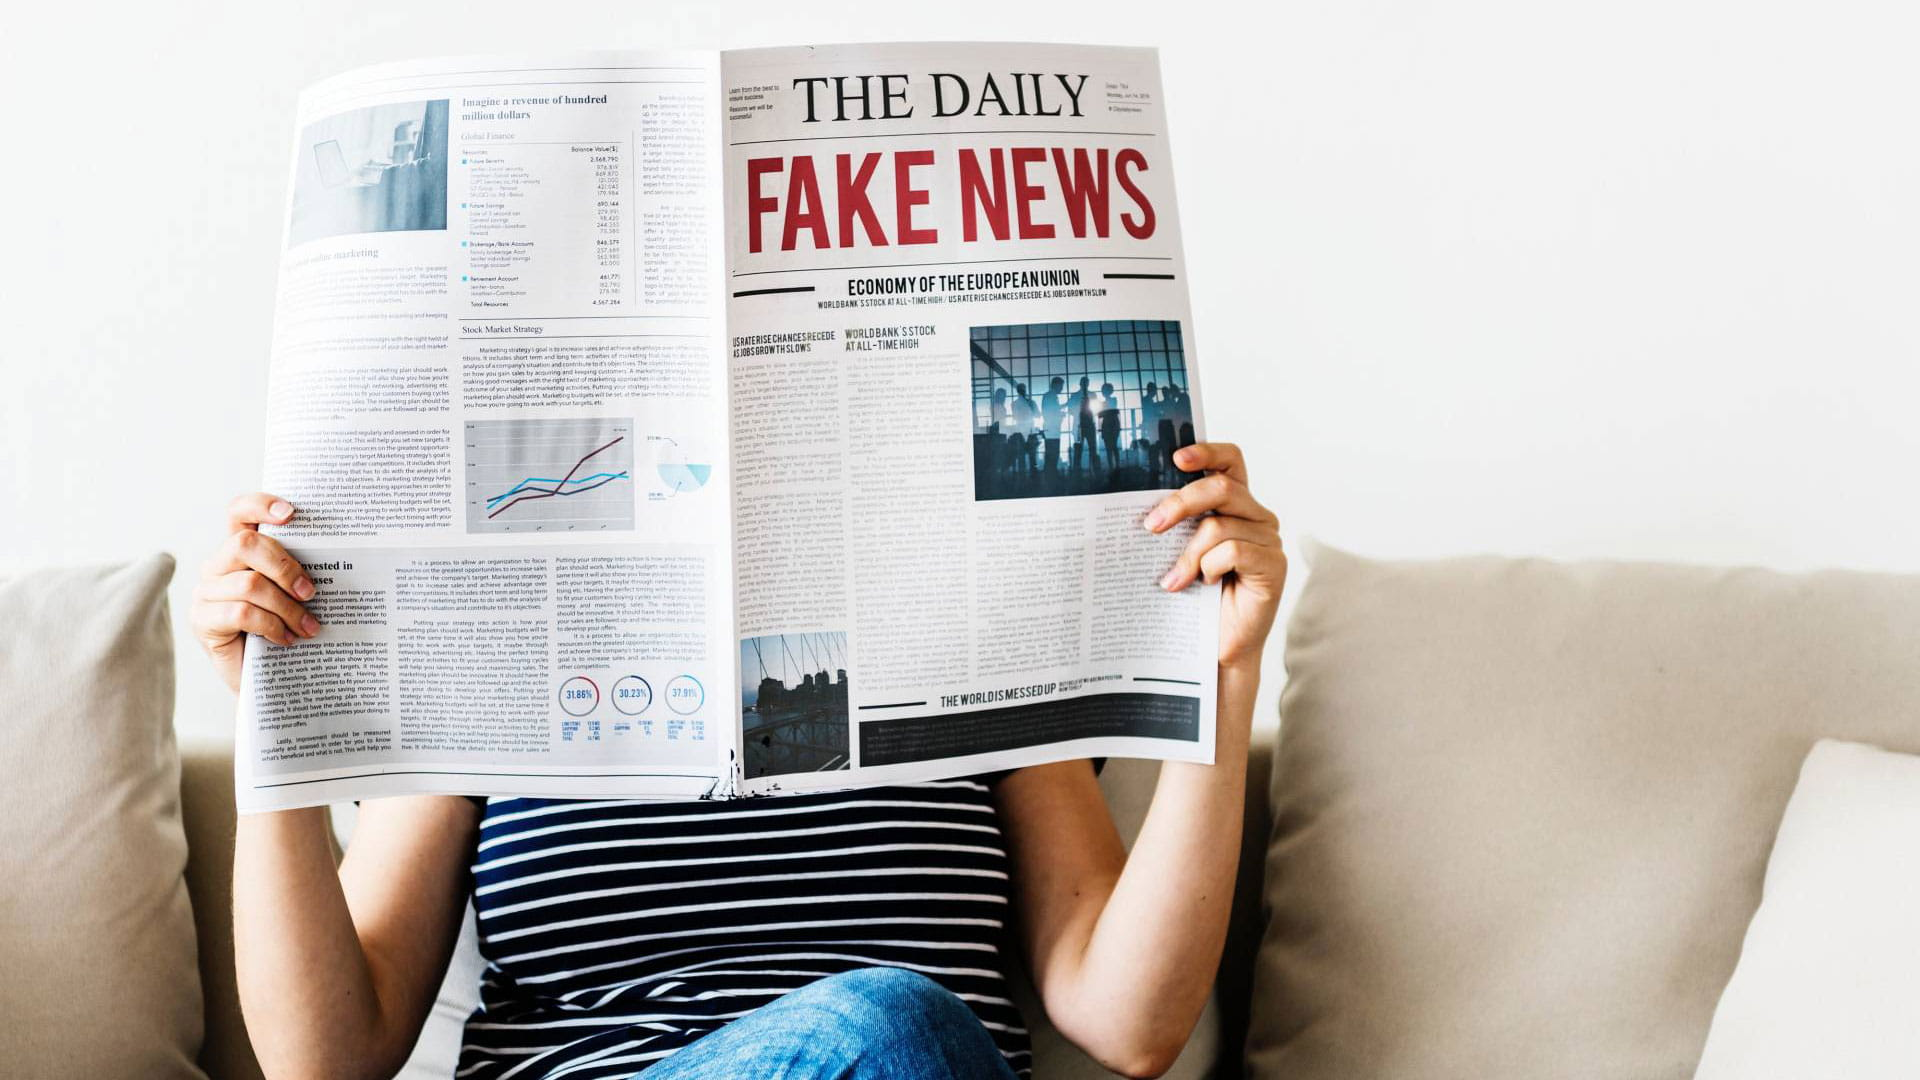 woman holding newspaper with fake news headline